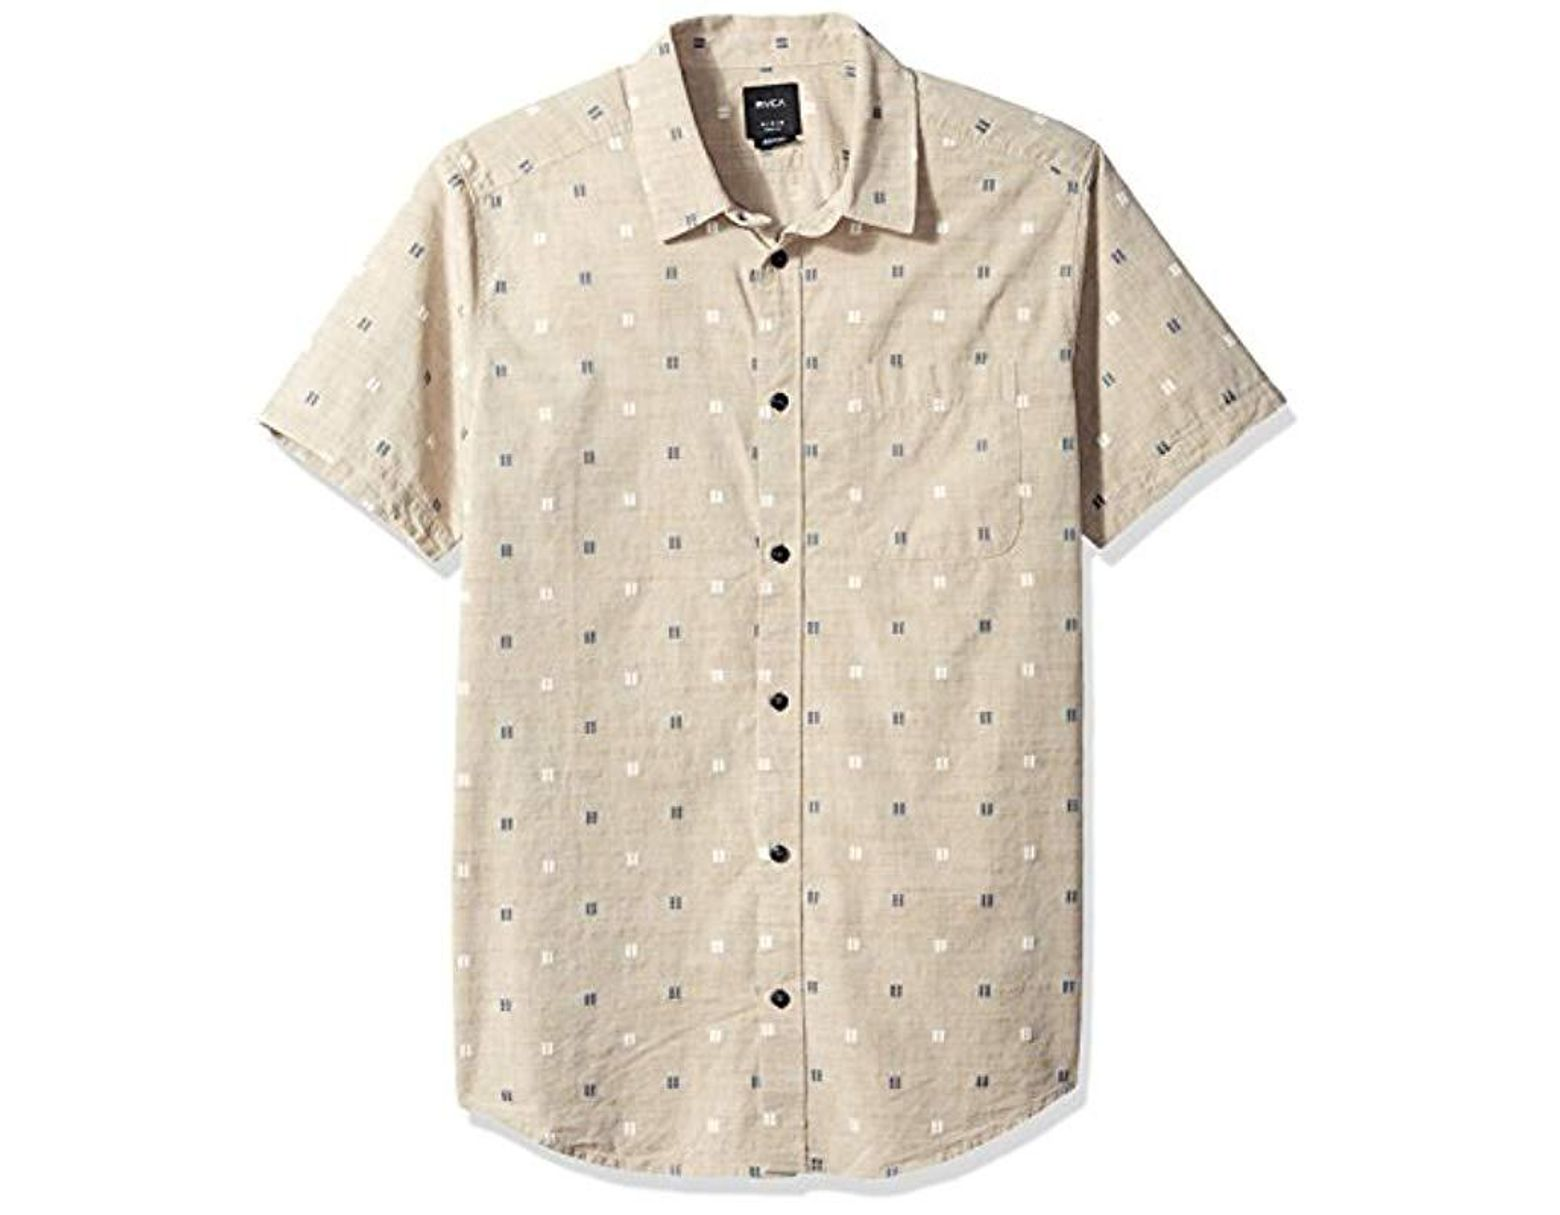 8363068a35 Men's Natural And Sons Short Sleeve Woven Button Up Shirt